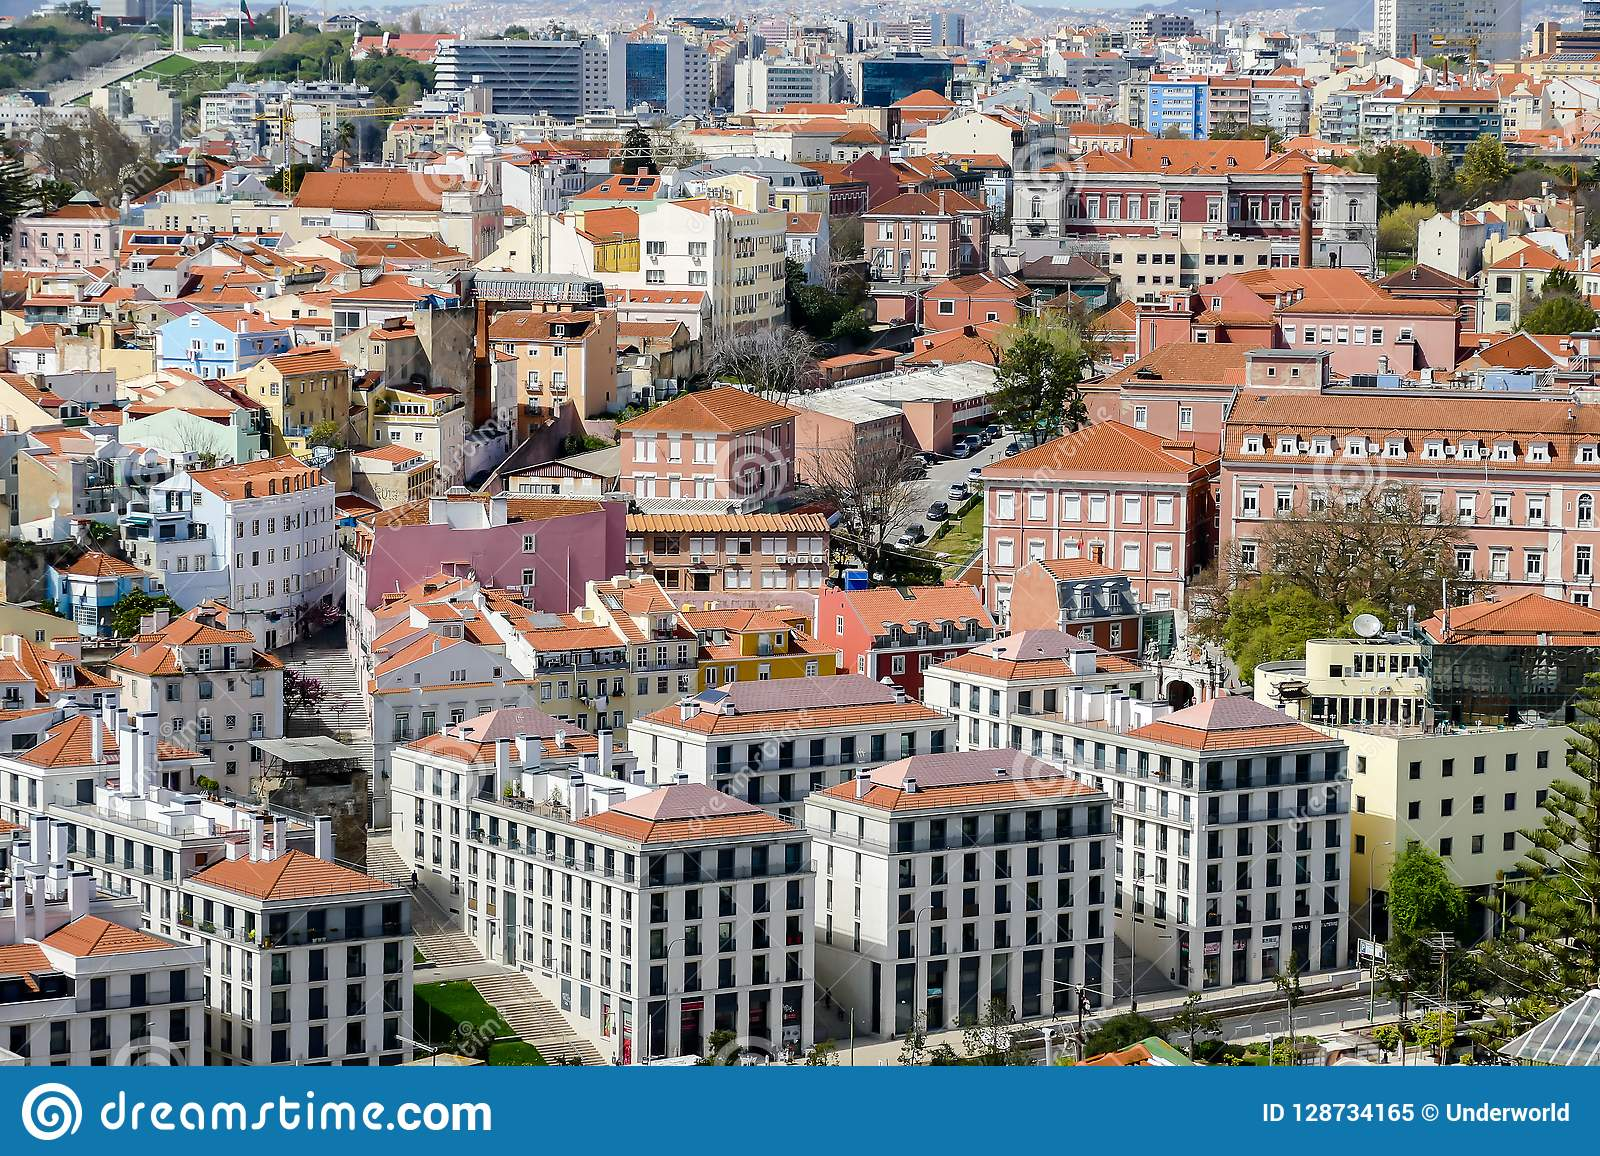 what is the capital city of portugal